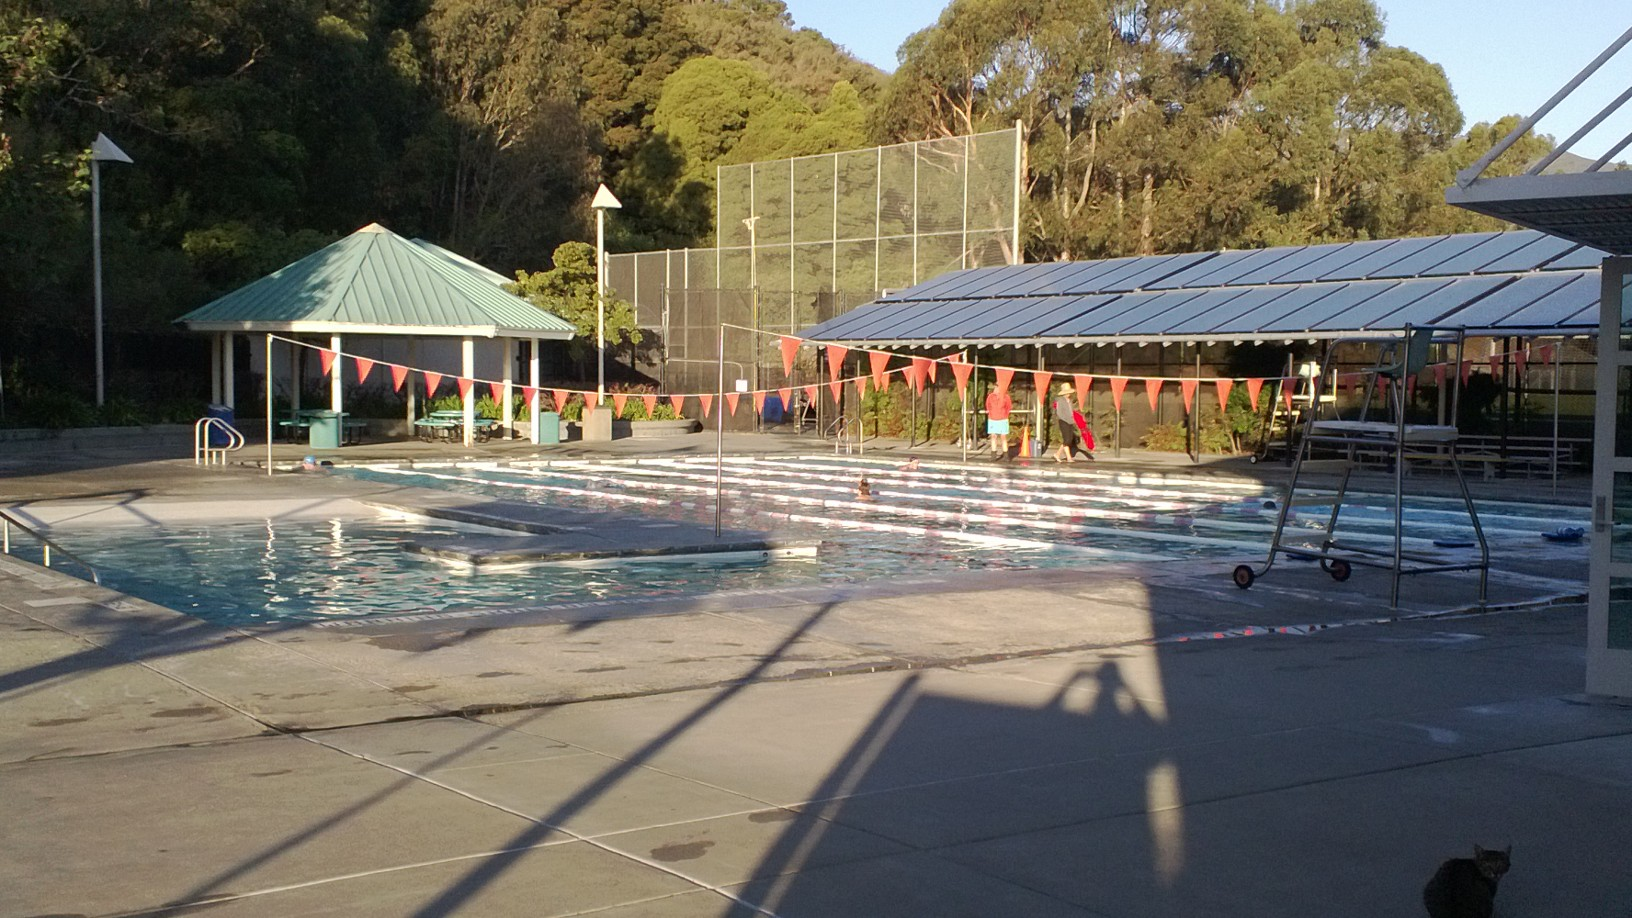 0143 - Brisbane (CA) Community Swim Center